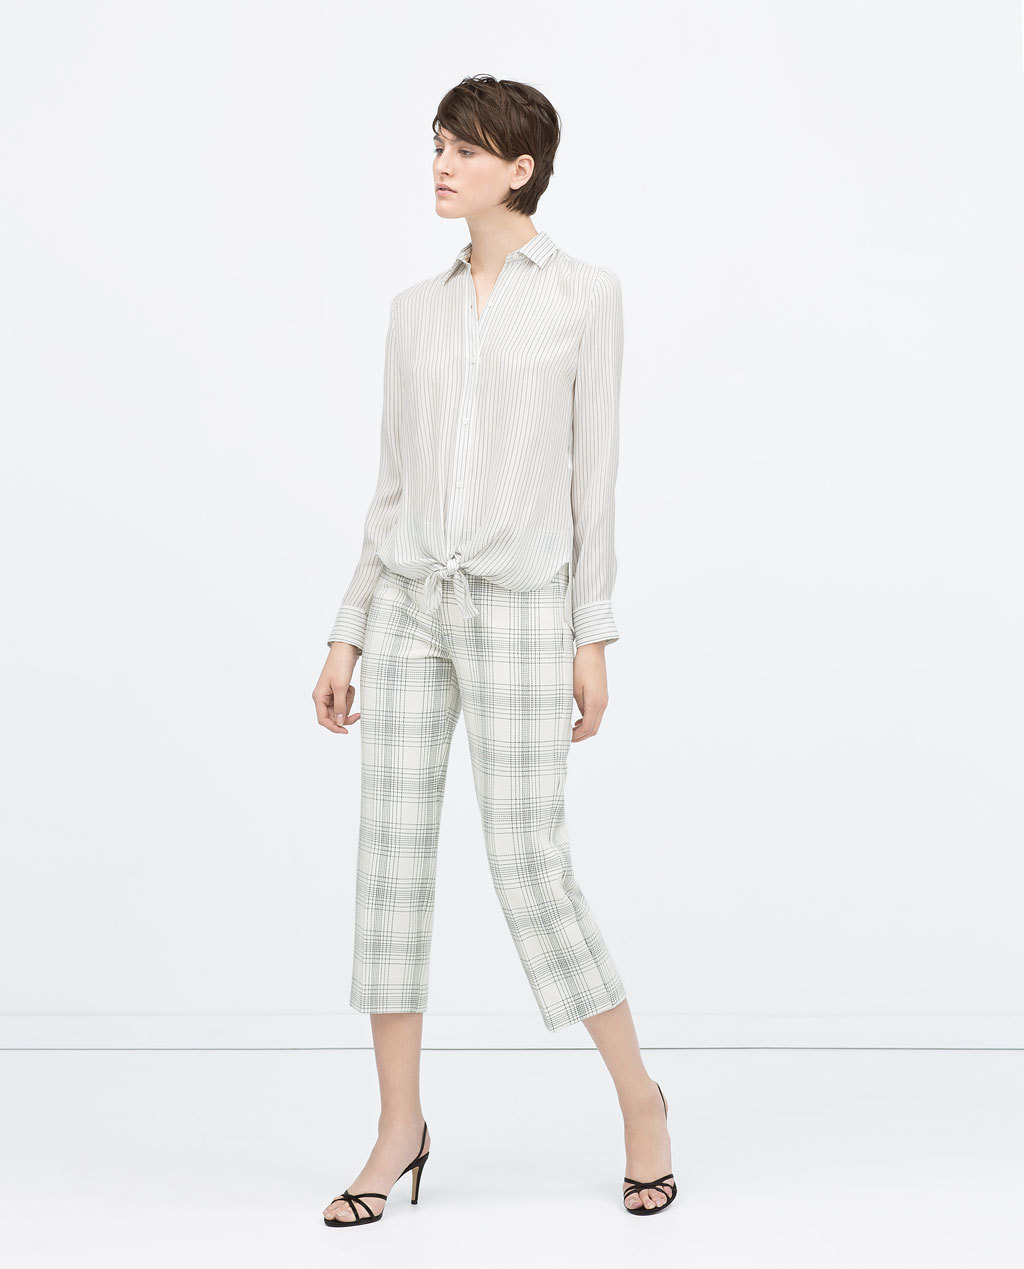 Checked Cropped Trousers - pattern: checked/gingham; style: capri; waist: mid/regular rise; predominant colour: ivory/cream; occasions: casual, creative work; length: calf length; fibres: polyester/polyamide - mix; fit: straight leg; pattern type: fabric; texture group: woven light midweight; season: s/s 2015; pattern size: big & busy (bottom)